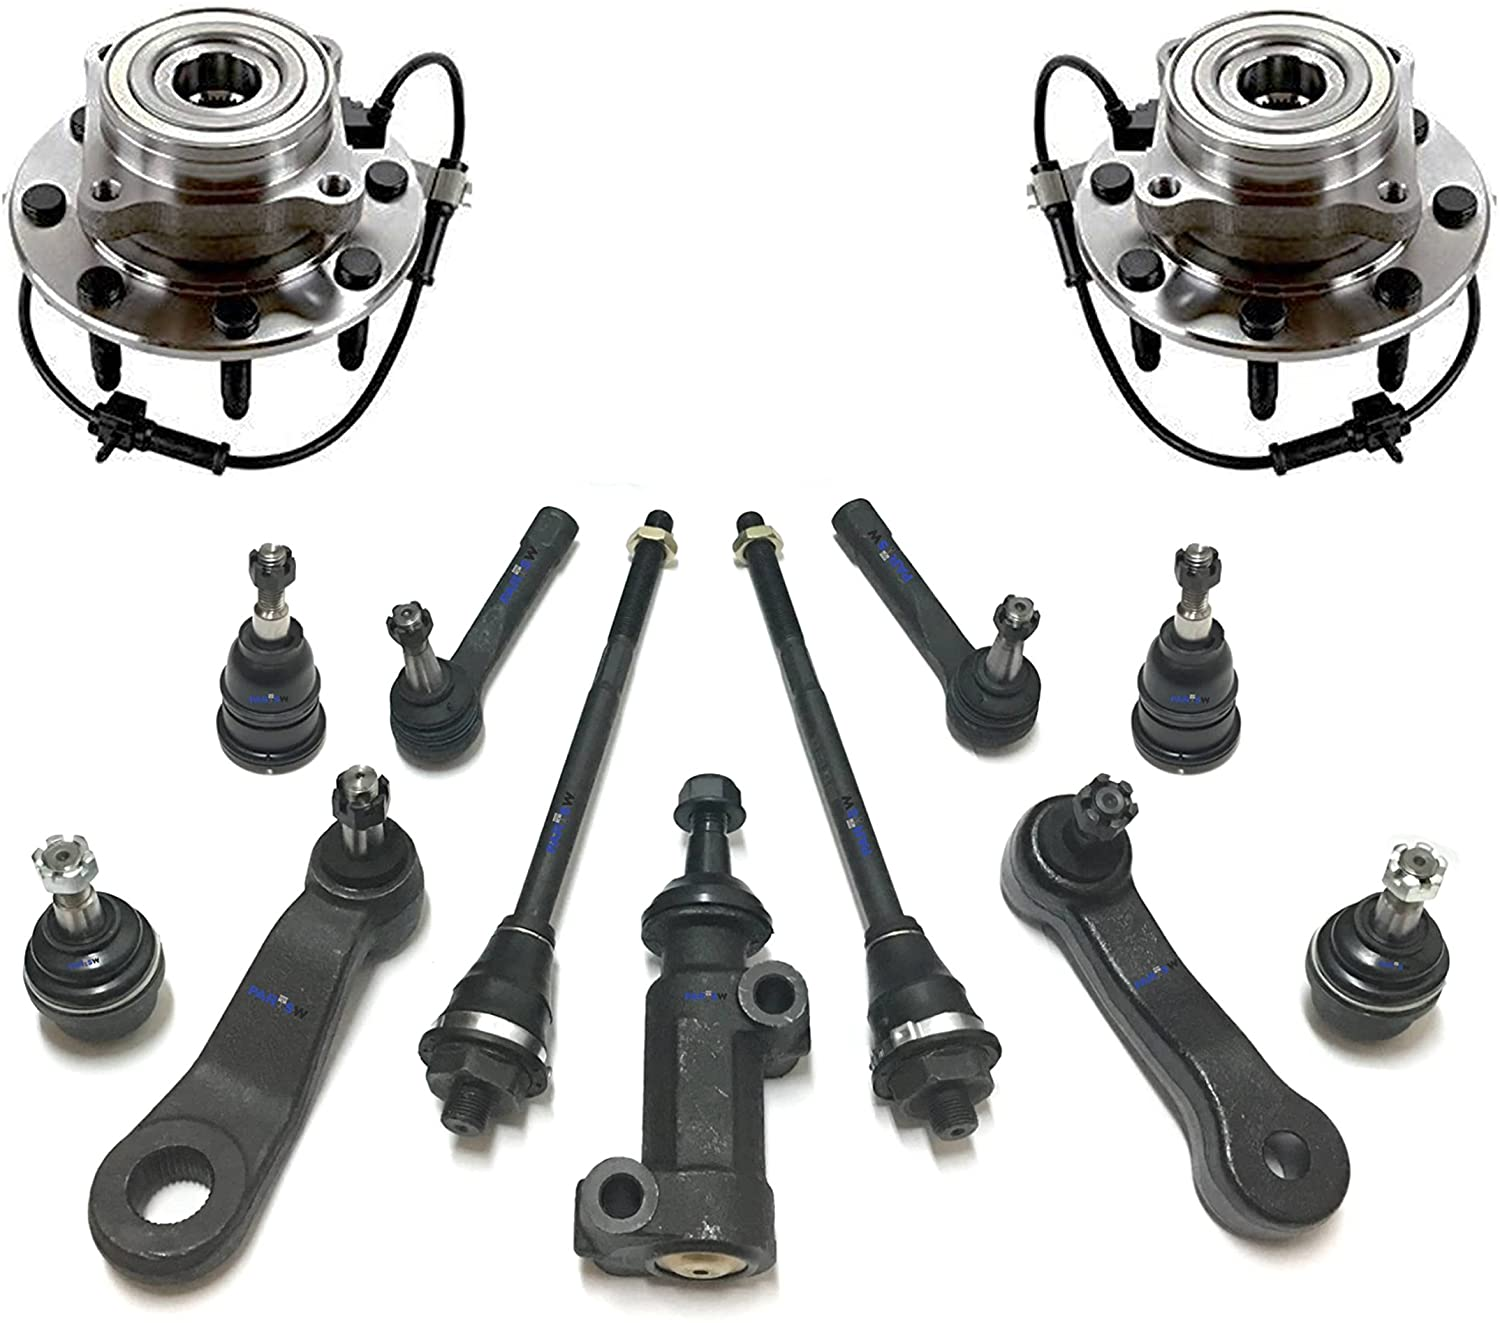 PartsW 13 Pc New Suspension Kit for Avalanche Silverado Suburban Sierra Yukon XL Wheel Hub Bearing Asseembly, Tie Rod Ends, Idler & Pitman Arms, Idler Arm Assembly, Sway Bar End Links, Ball Joints 4WD